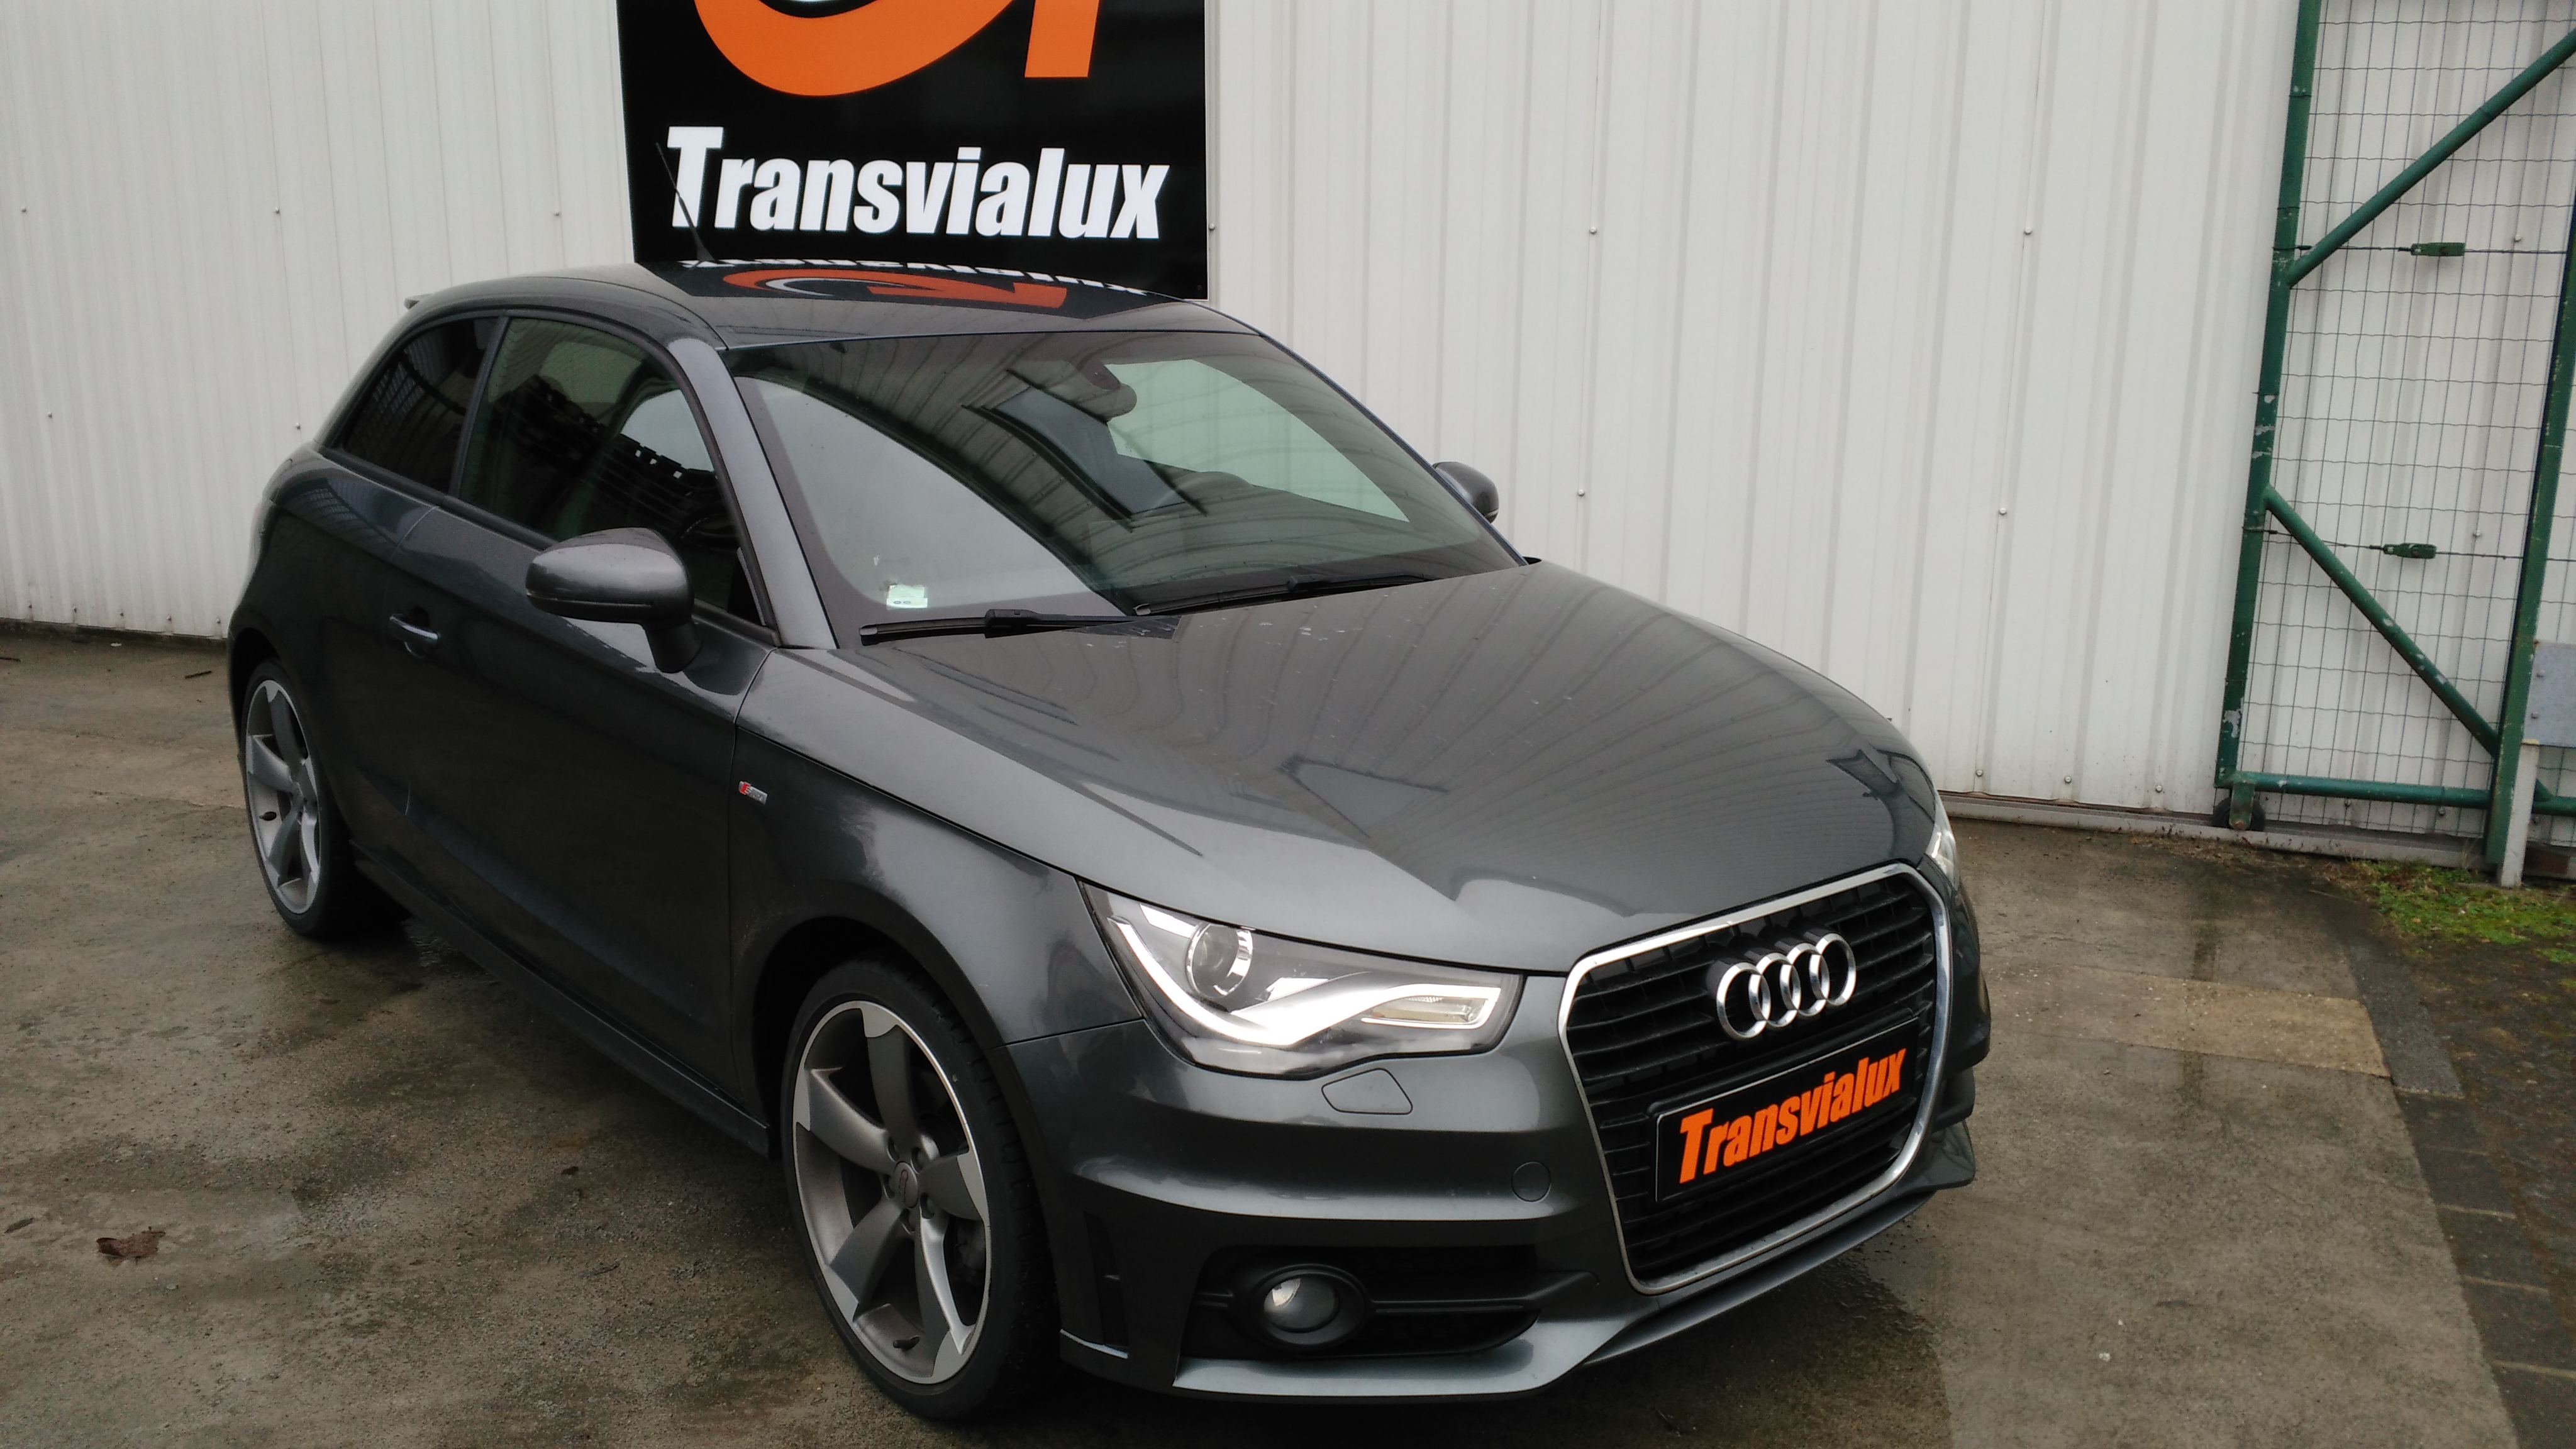 audi a1 1 4 tfsi 185 s line s tronic transvialux automobiles. Black Bedroom Furniture Sets. Home Design Ideas